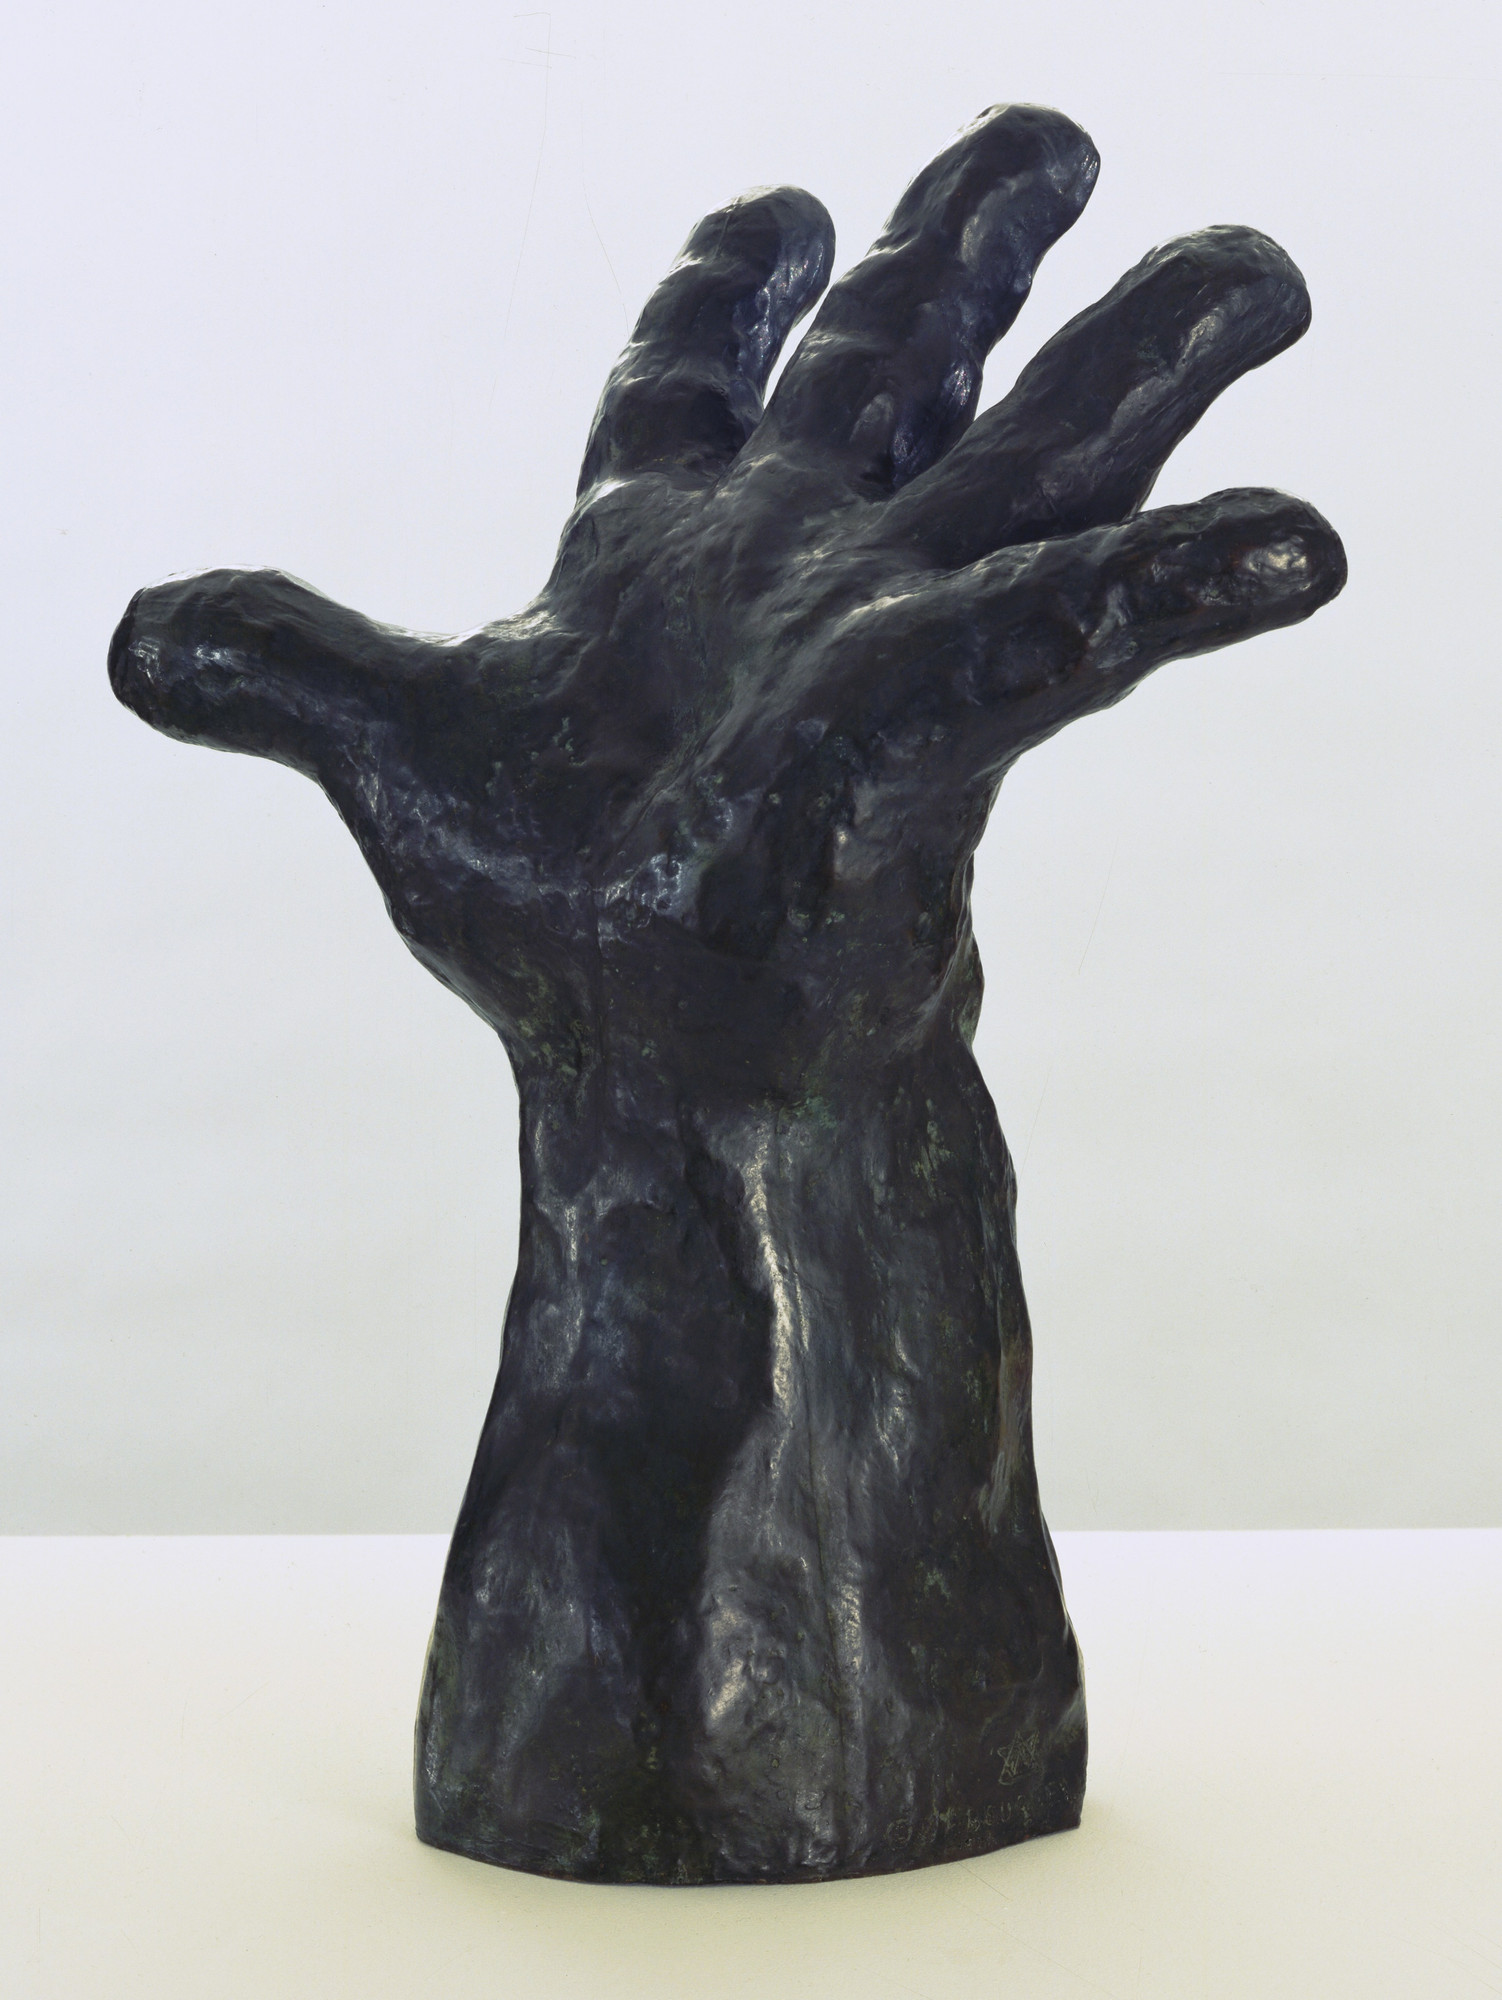 Émile-Antoine Bourdelle. The Warrior's Hand. 1889